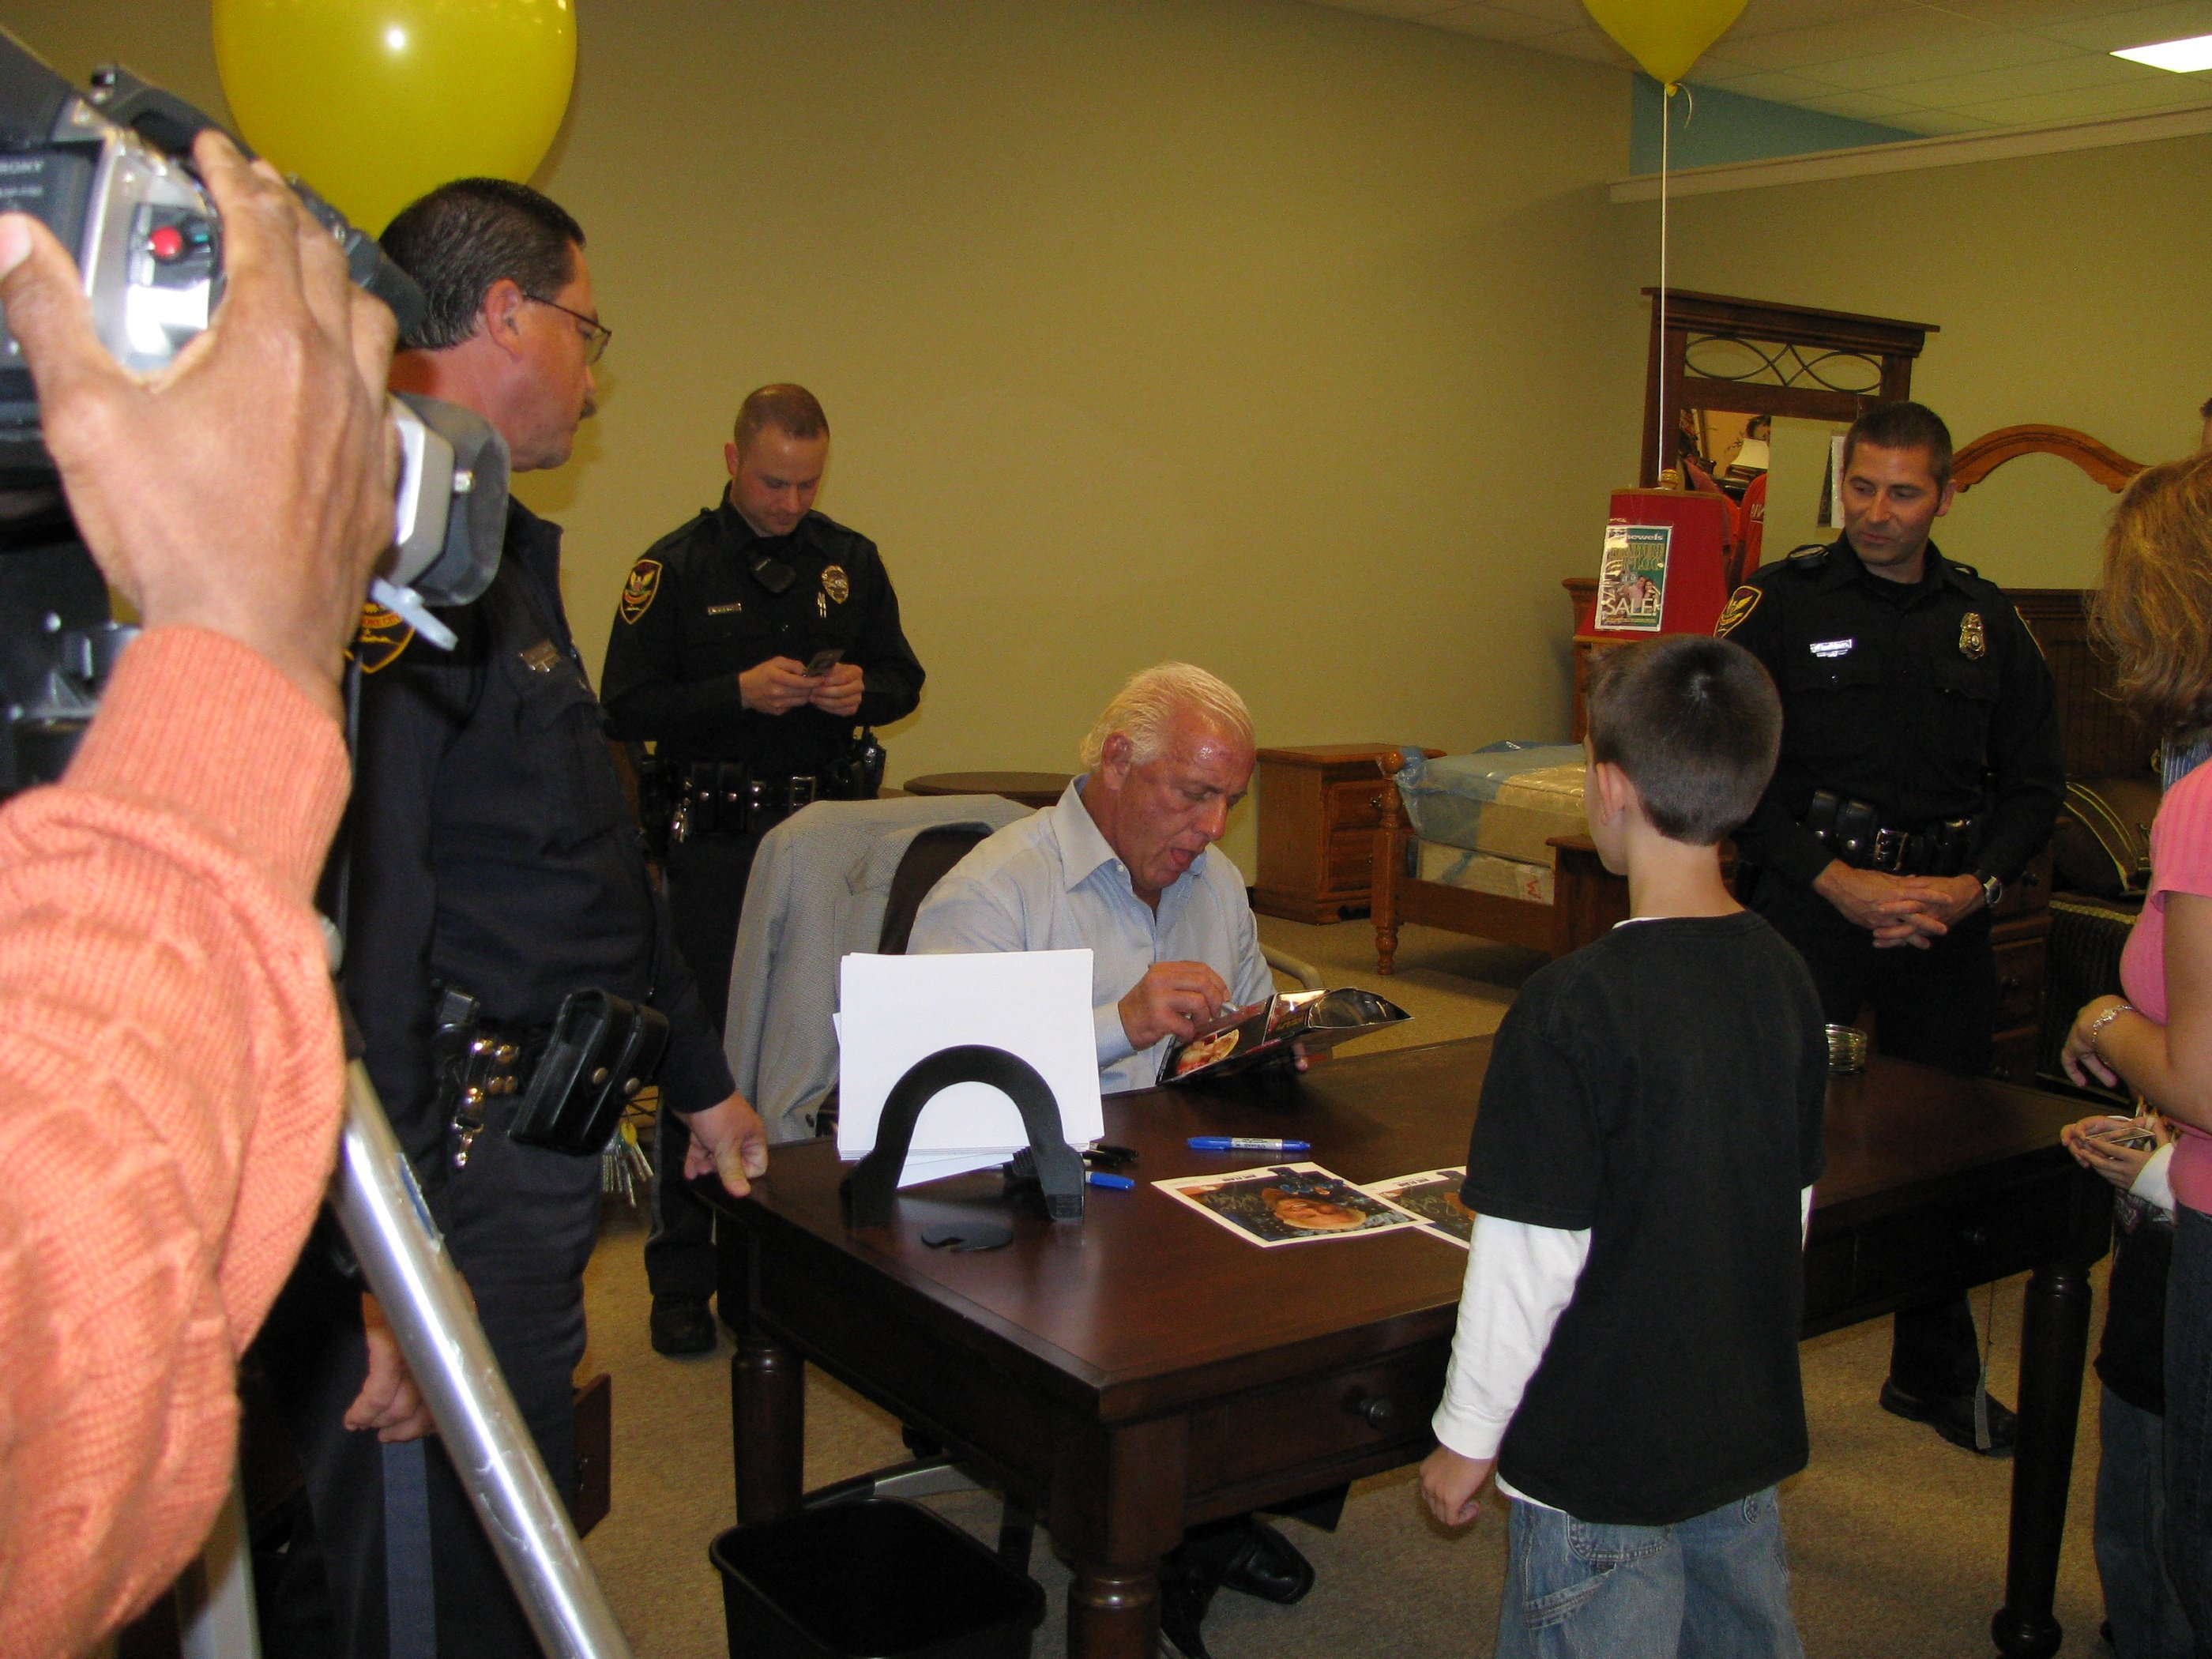 Ric Flair signing a figure of himself for a young boy